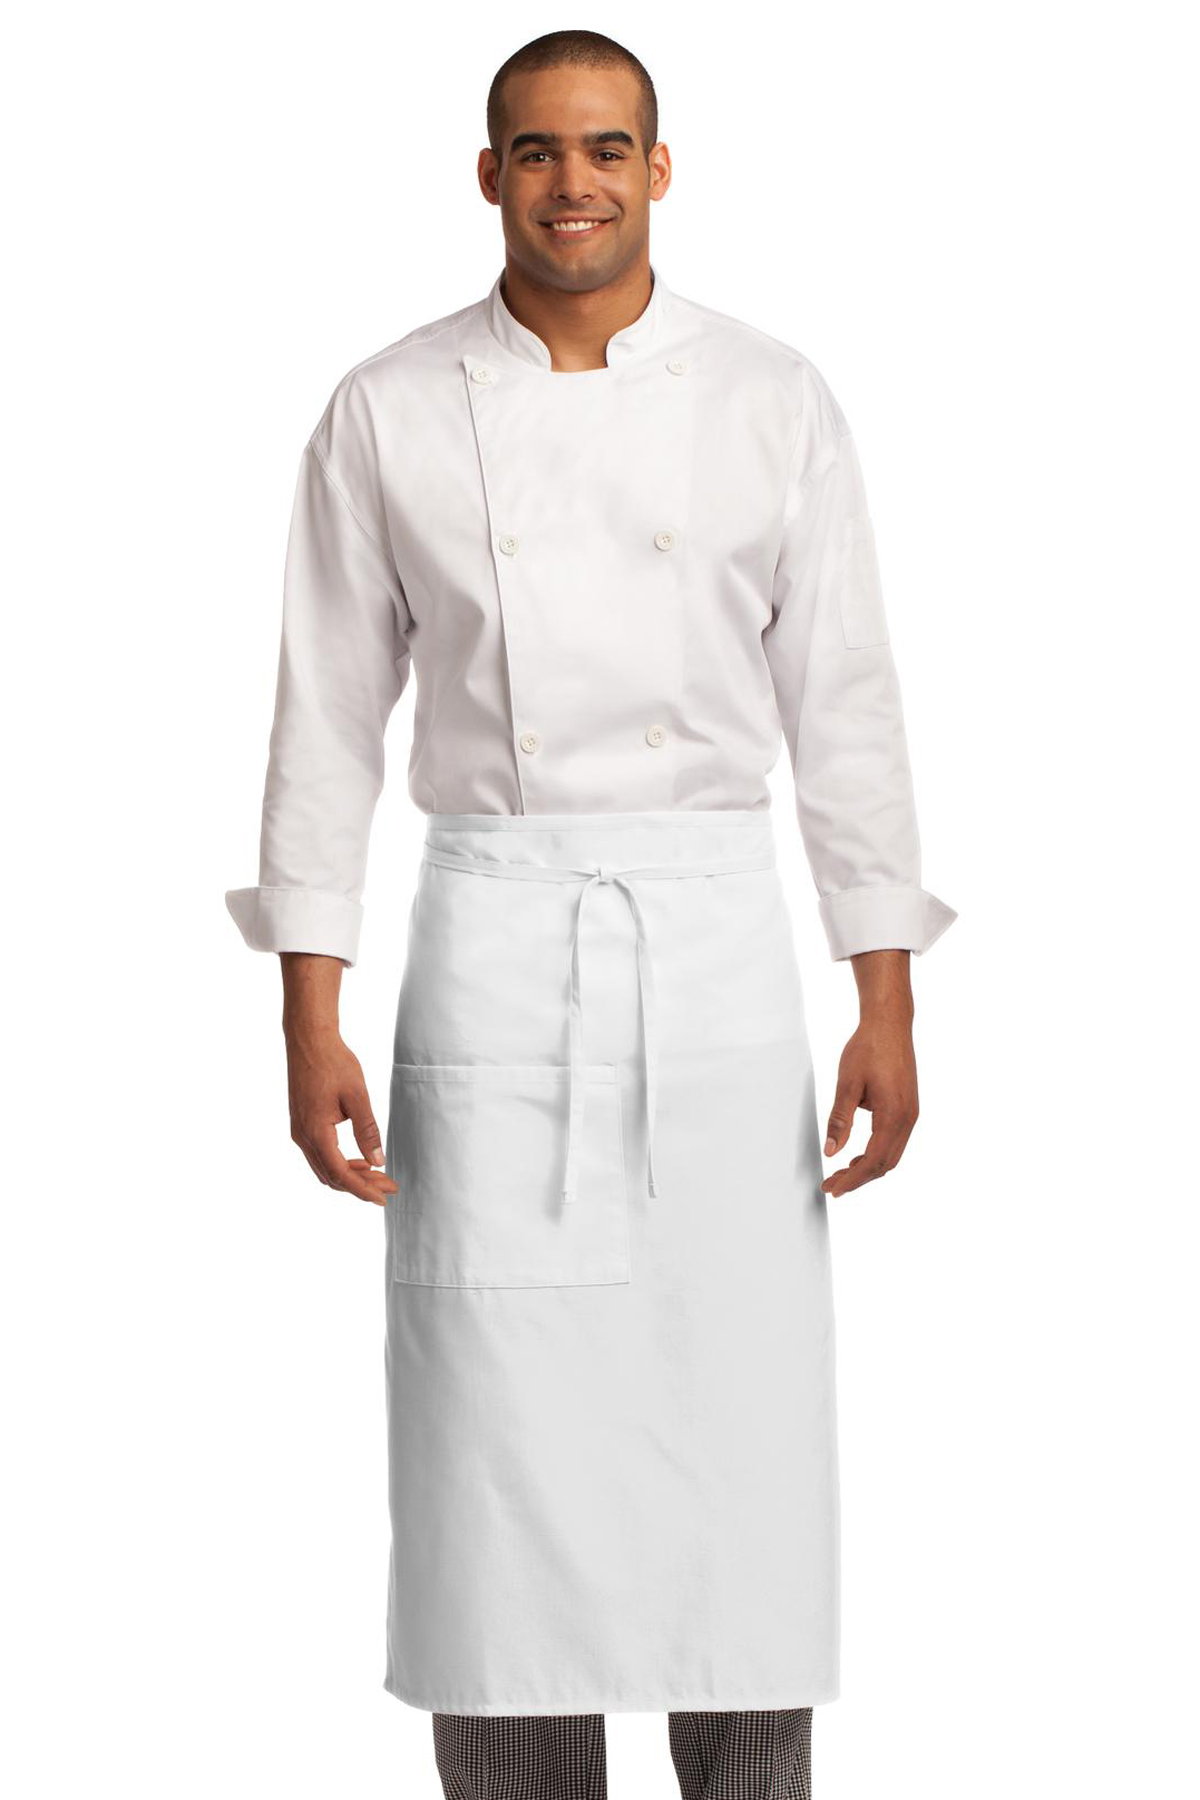 Accessories-Aprons-7